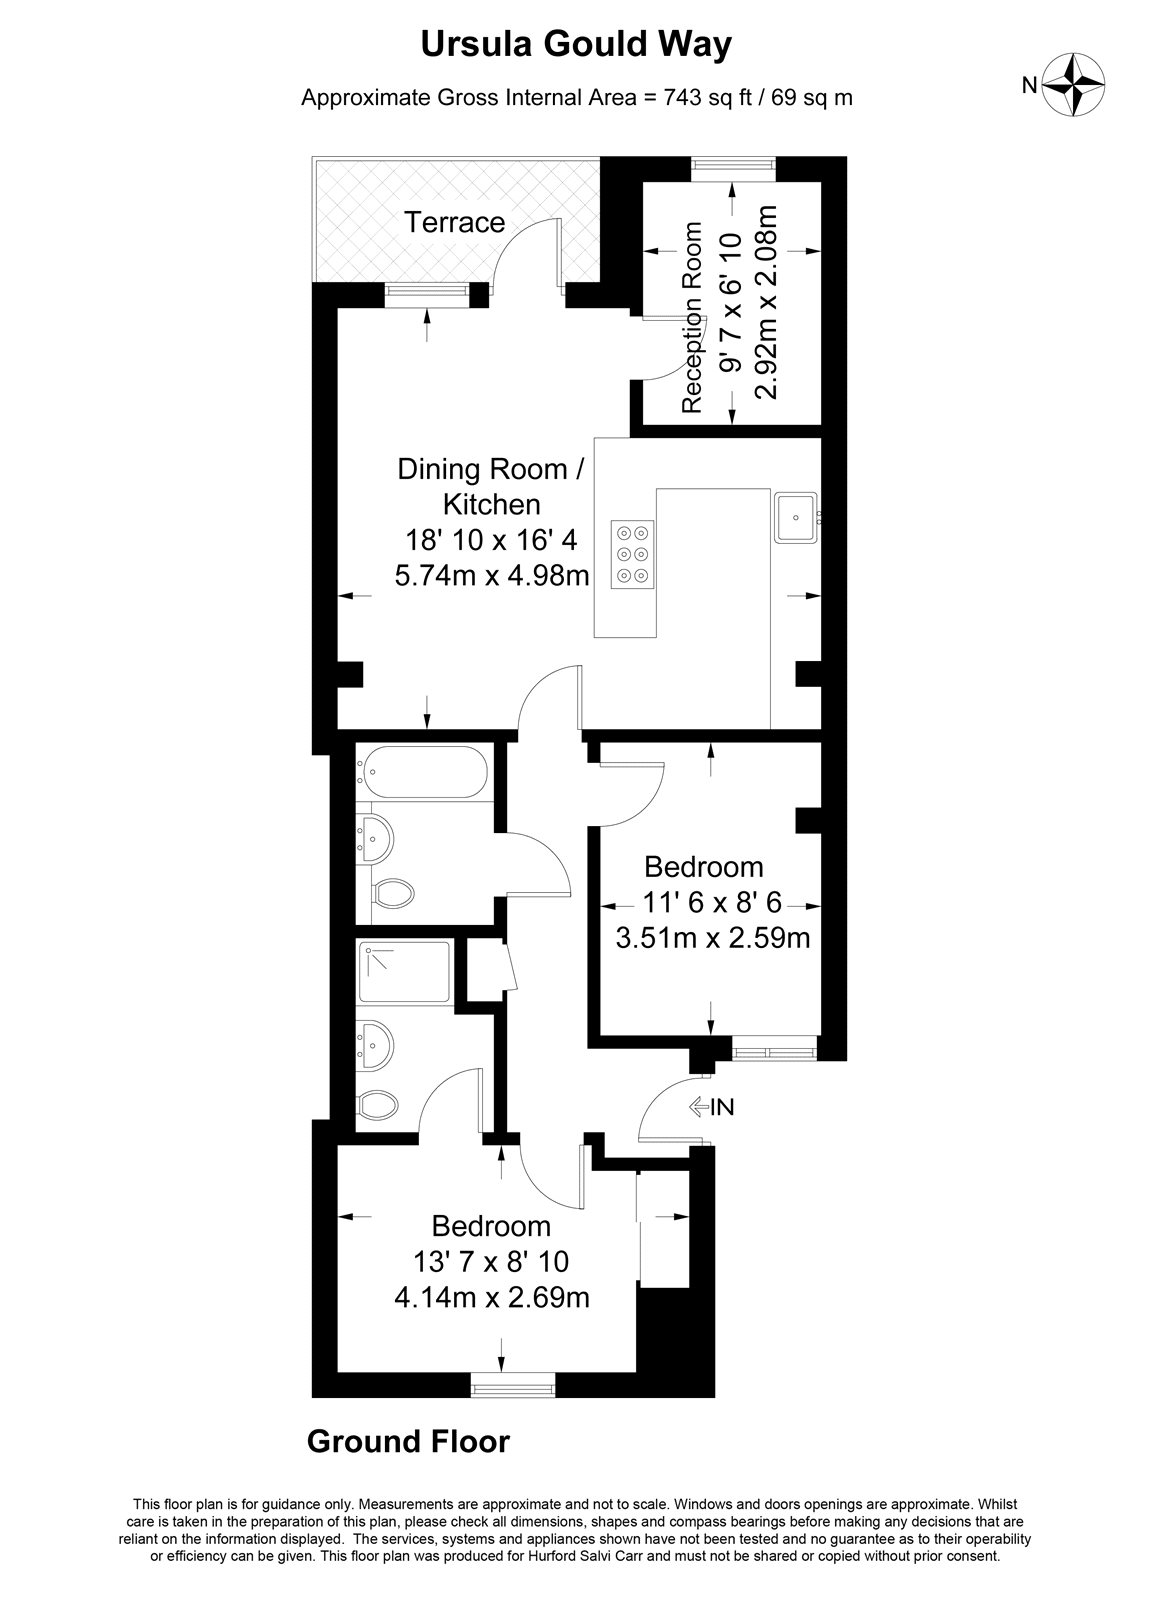 Ursula Gould Way, Limehouse Cut, E14 floorplan